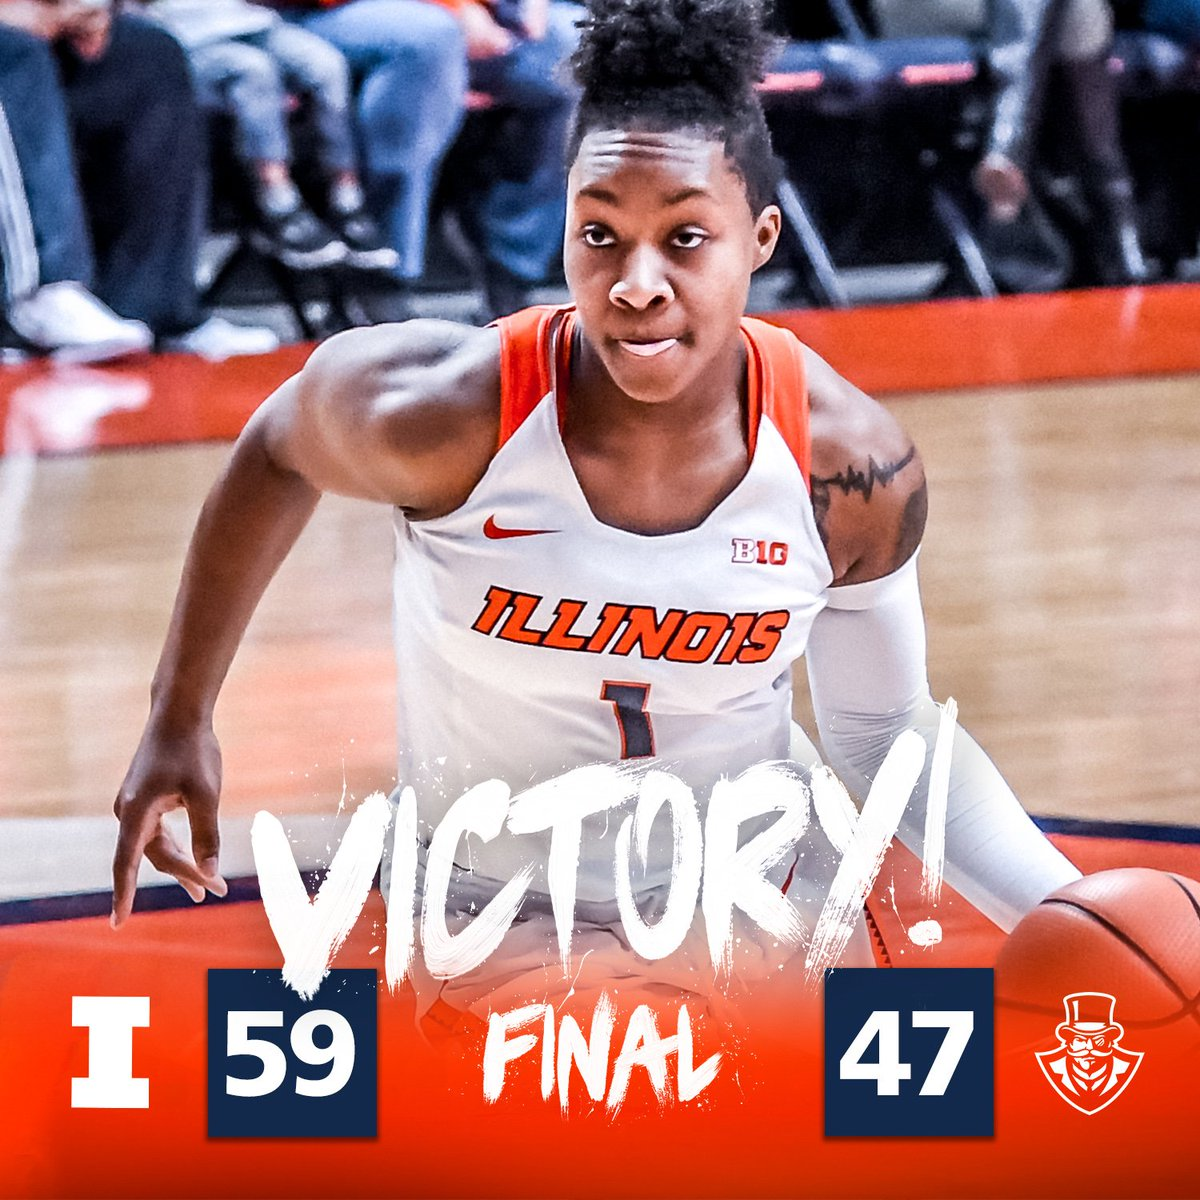 RT @IlliniWBB: That's an #ILLINI WIN!   Illinois improves to 9-4 on the season with today's 59-47 win over Austin Peay! https://t.co/fz27Jz…